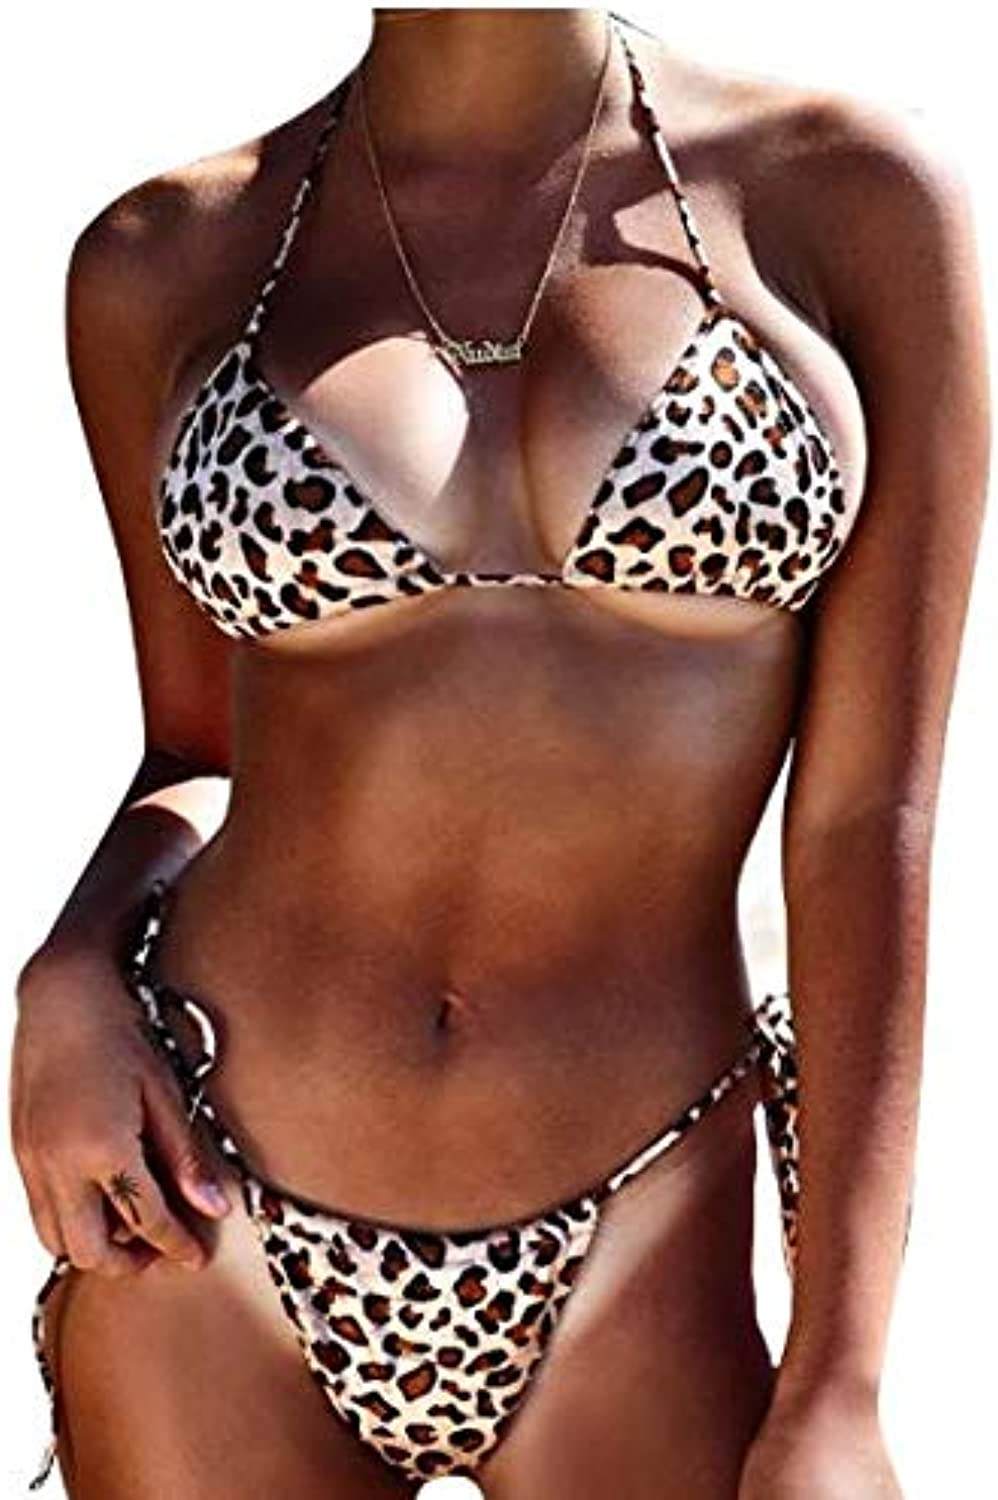 S-5XL Bikini 2019 Large Size lepoard Print Bikini Set Beachwear Swimwear for Women Plus Size Bikini Set zafull 2019 Swimsuit   as picture1, 4XL